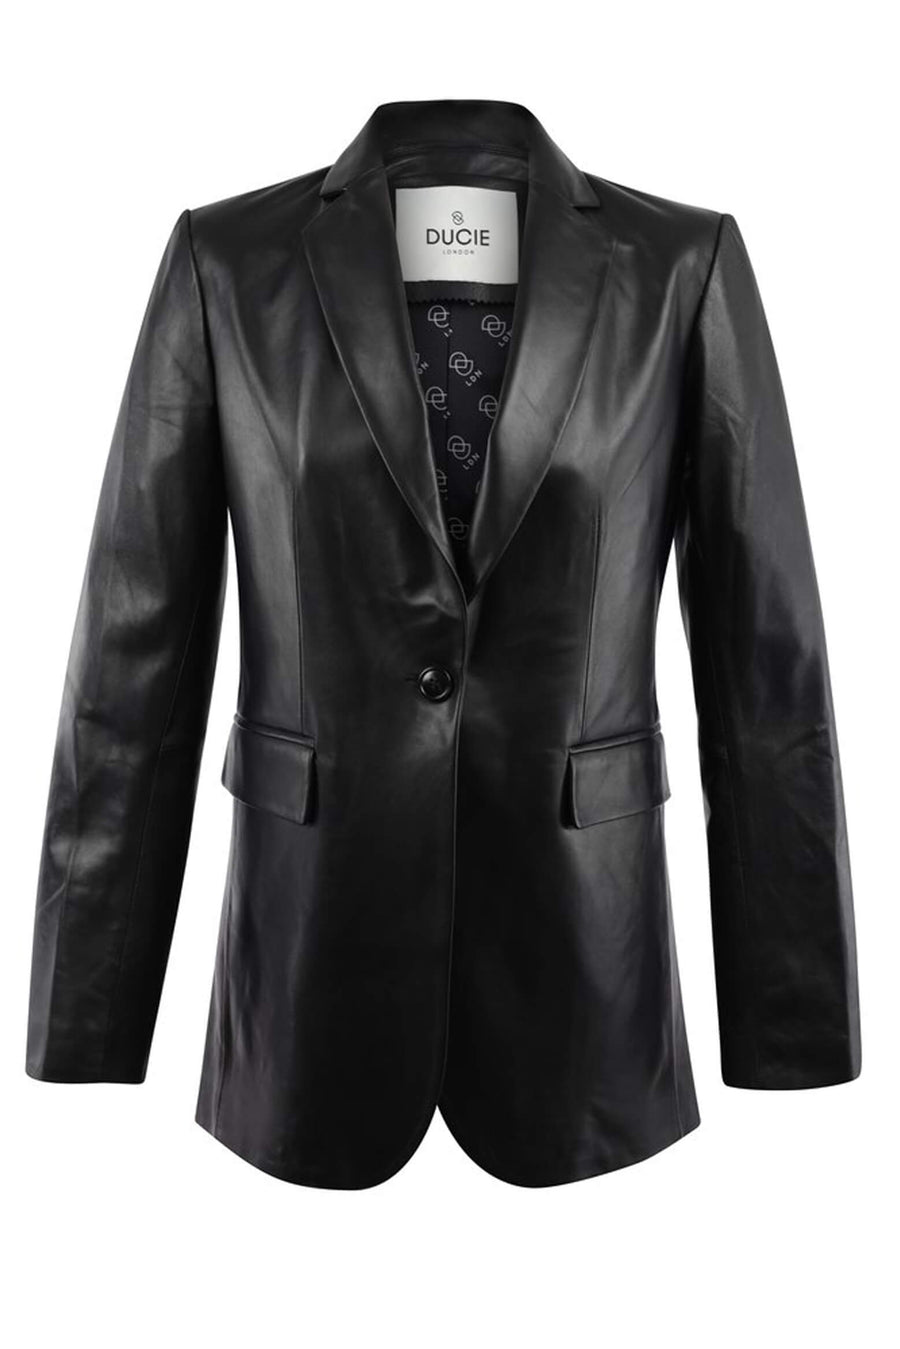 Ducie London Charlie Leather Suit Jacket in Black from The New Trend